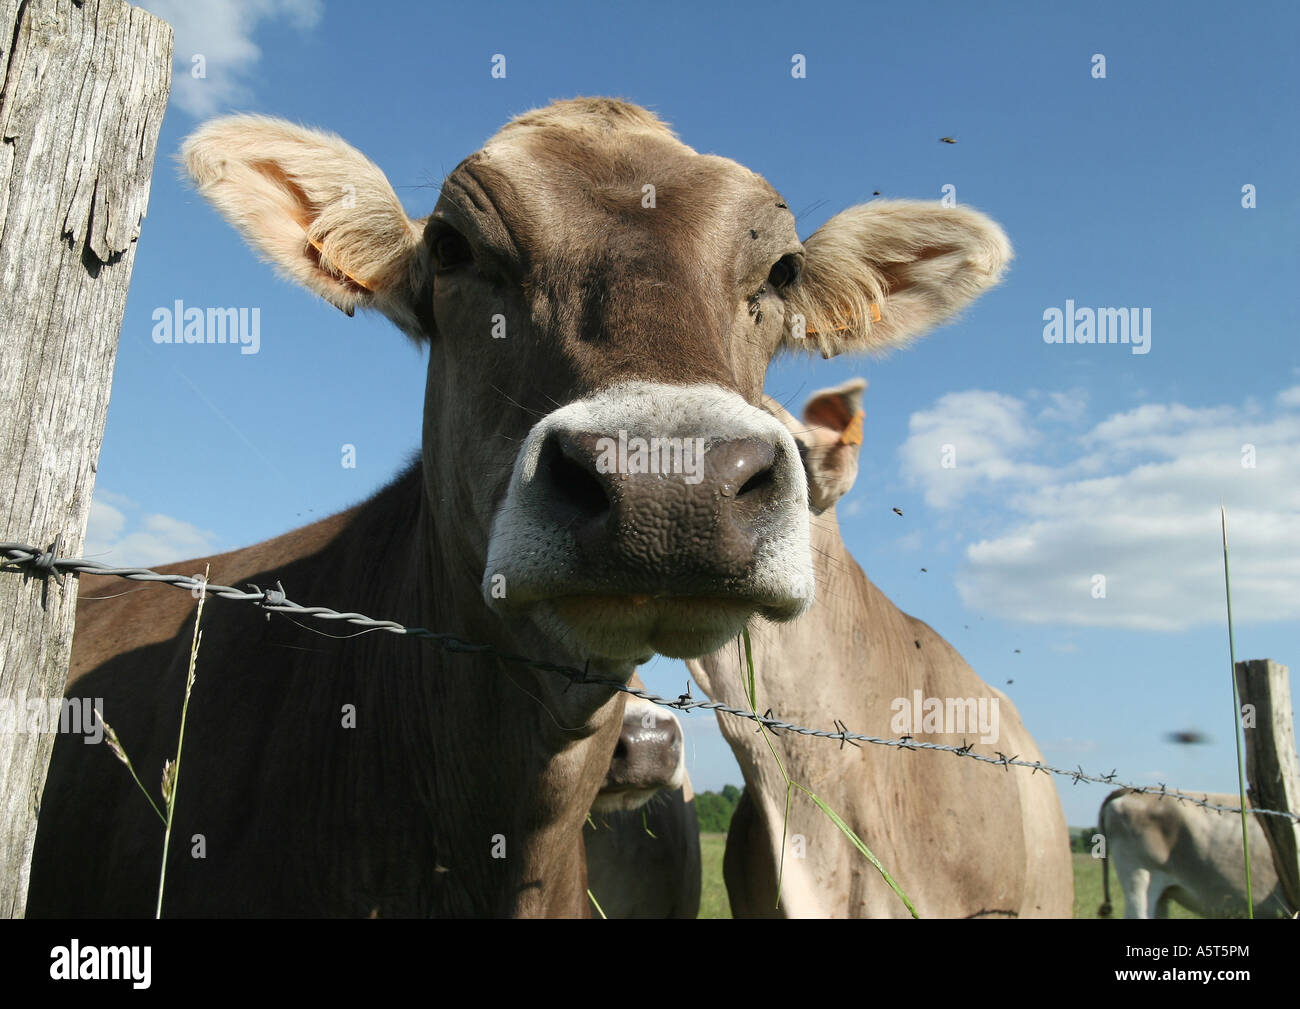 Brown swiss cow looking over barbed wire fence, close-up - Stock Image